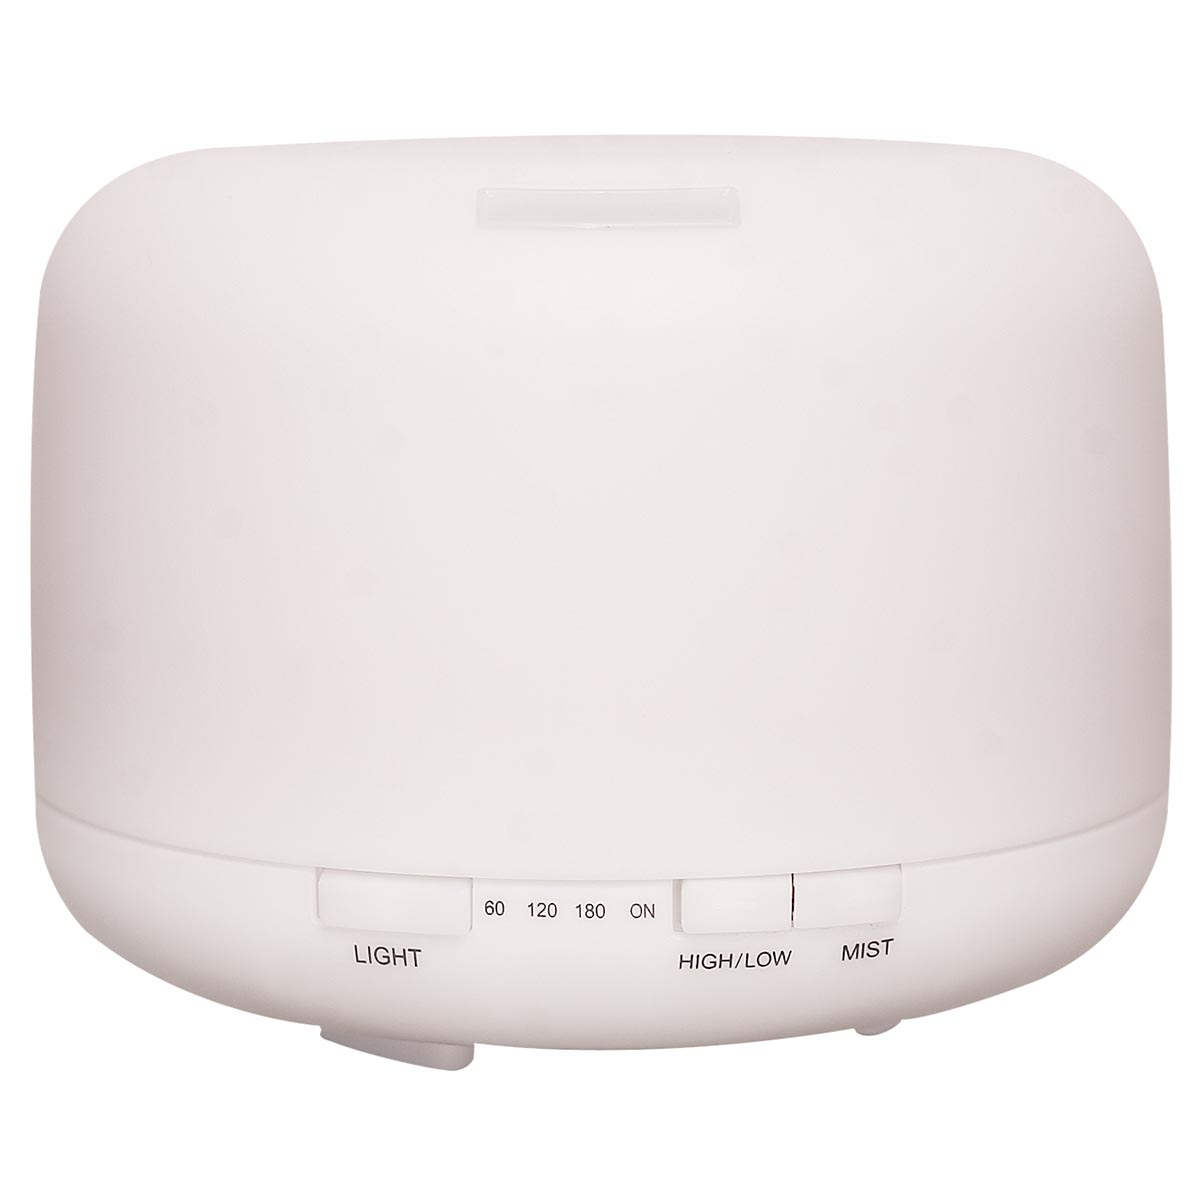 Electronic Aroma Diffuser ~ For pro serenity ultrasonic aroma diffuser w sd